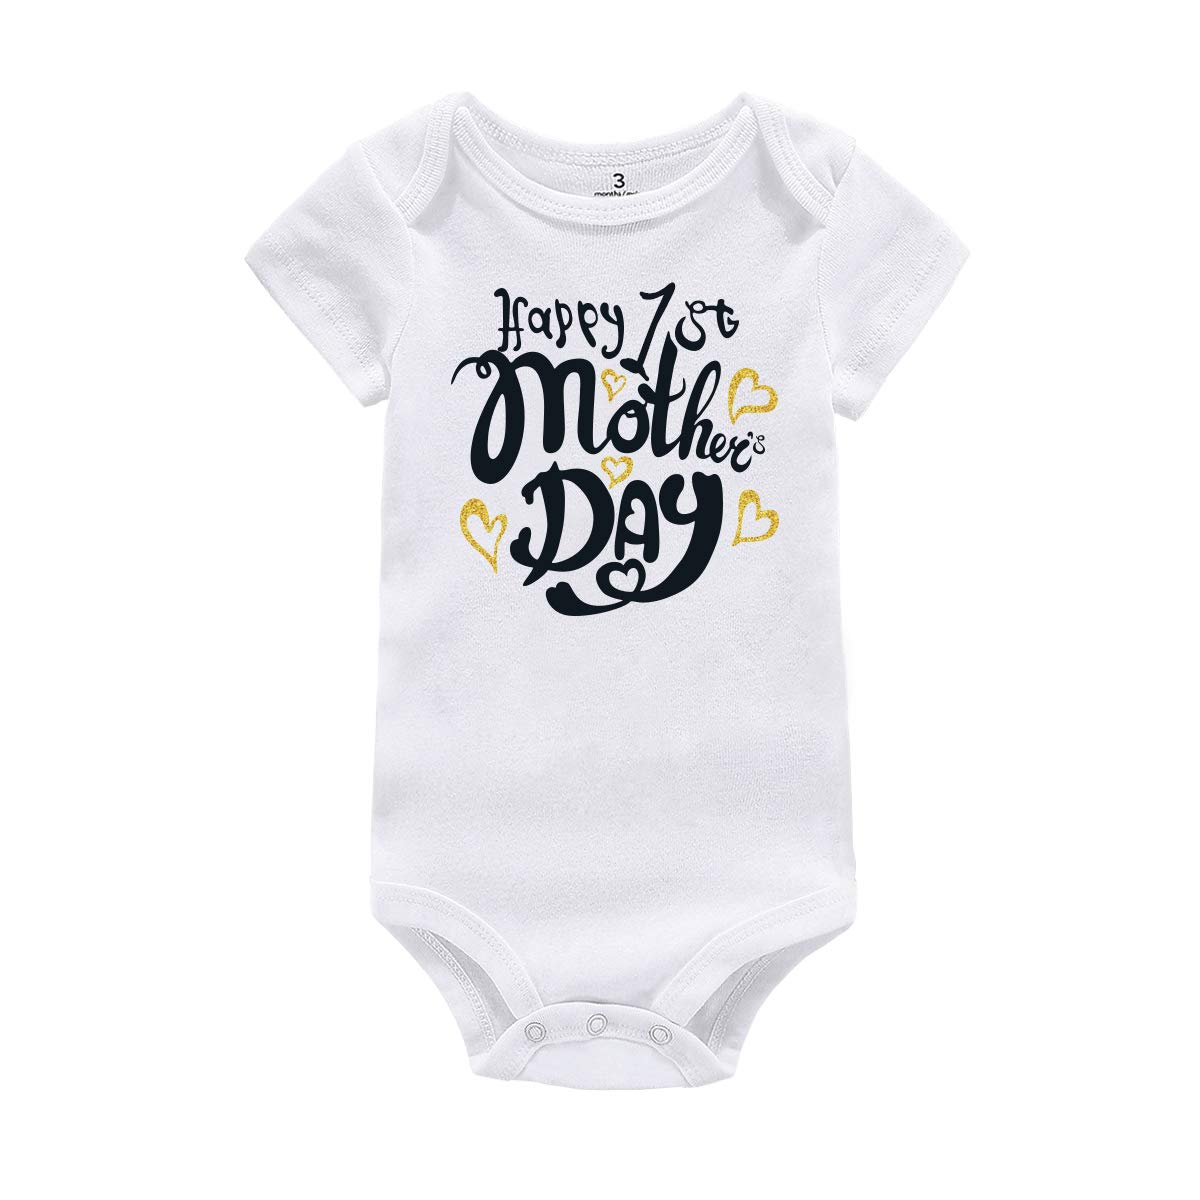 WINZIK Happy 1st Mother's Day Baby Romper Bodysuit Outfit Newborn Infant Boy Girl One-Piece Jumpsuit Shirt